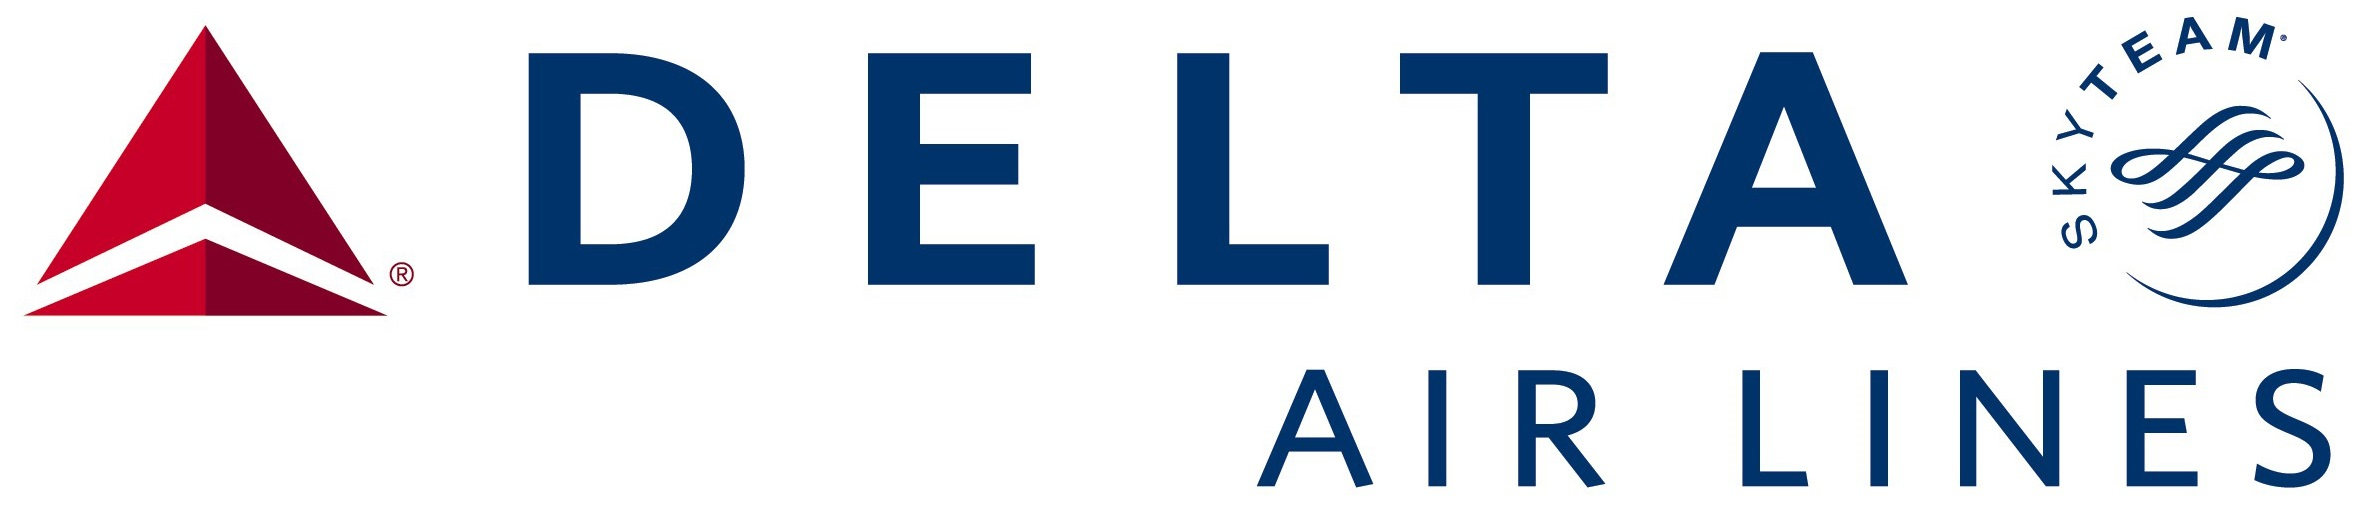 Image result for delta airlines logo images